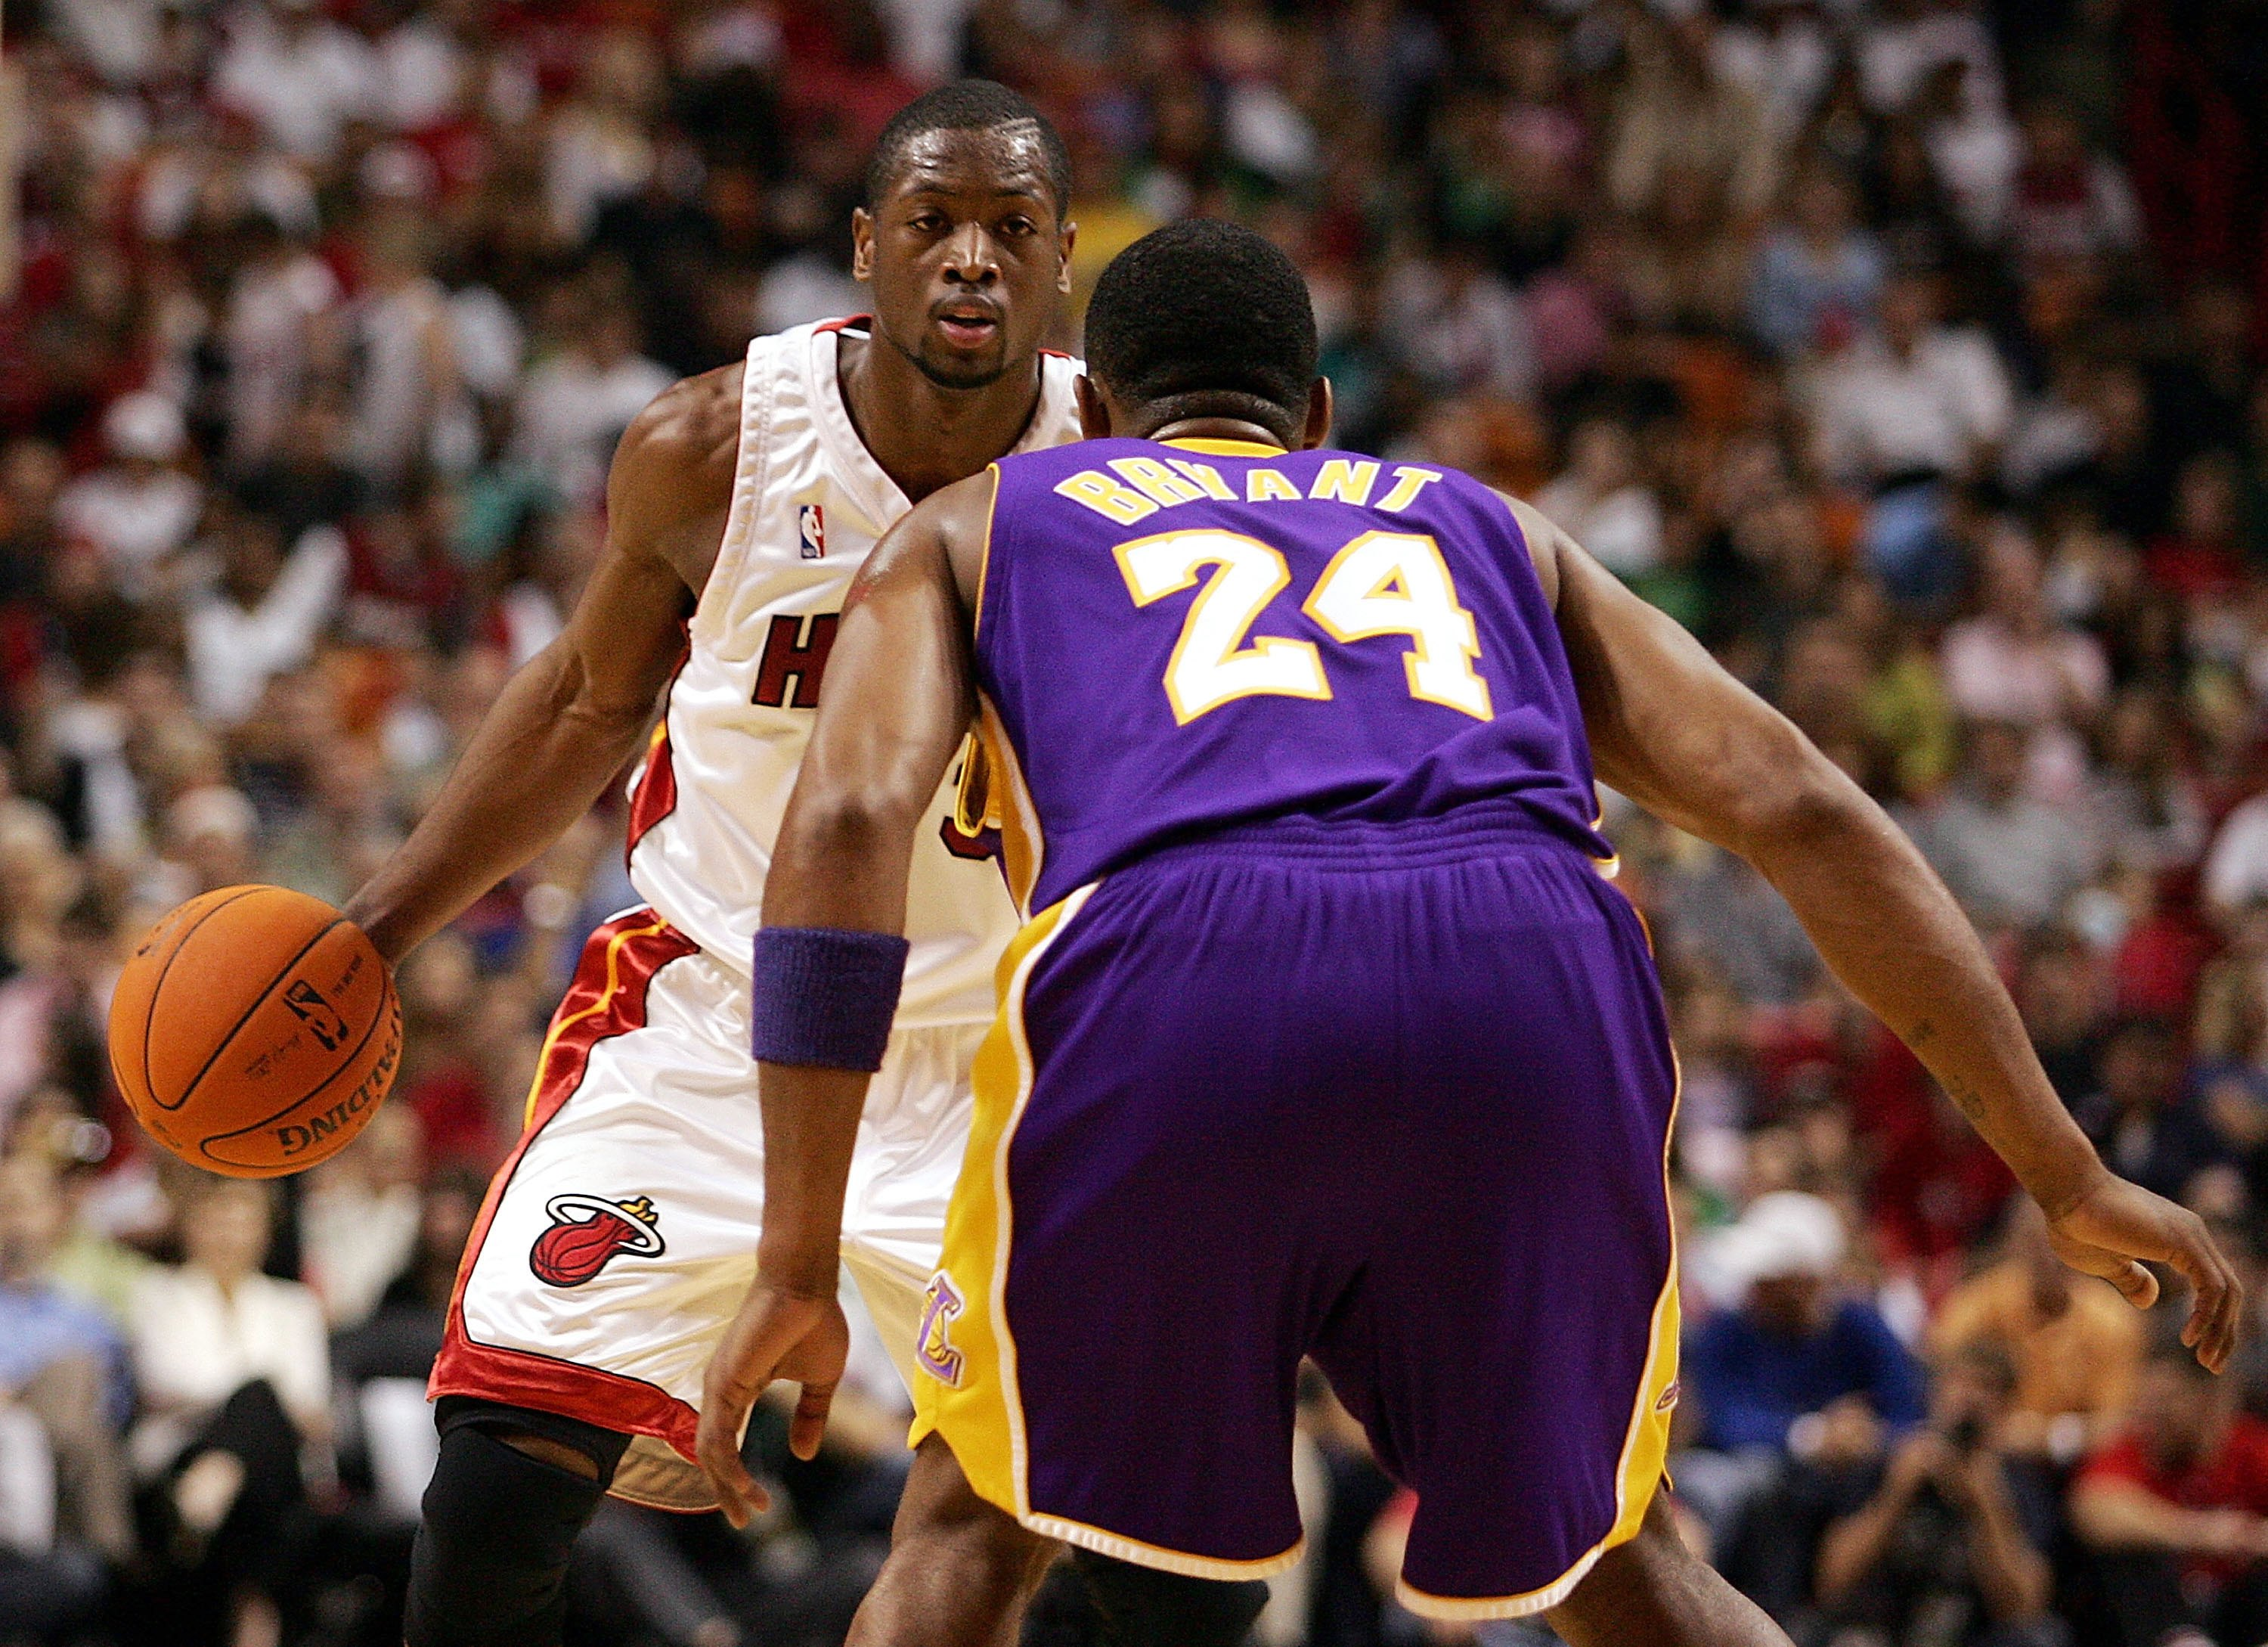 MIAMI - DECEMBER 25:  Guard Dwyane Wade #3 of the Miami Heat looks to drive against guard Kobe Bryant #24 of the Los Angeles Lakers on December 25, 2006 at the American Airlines Arena in Miami, Florida.  NOTE TO USER: User expressly acknowledges and agree